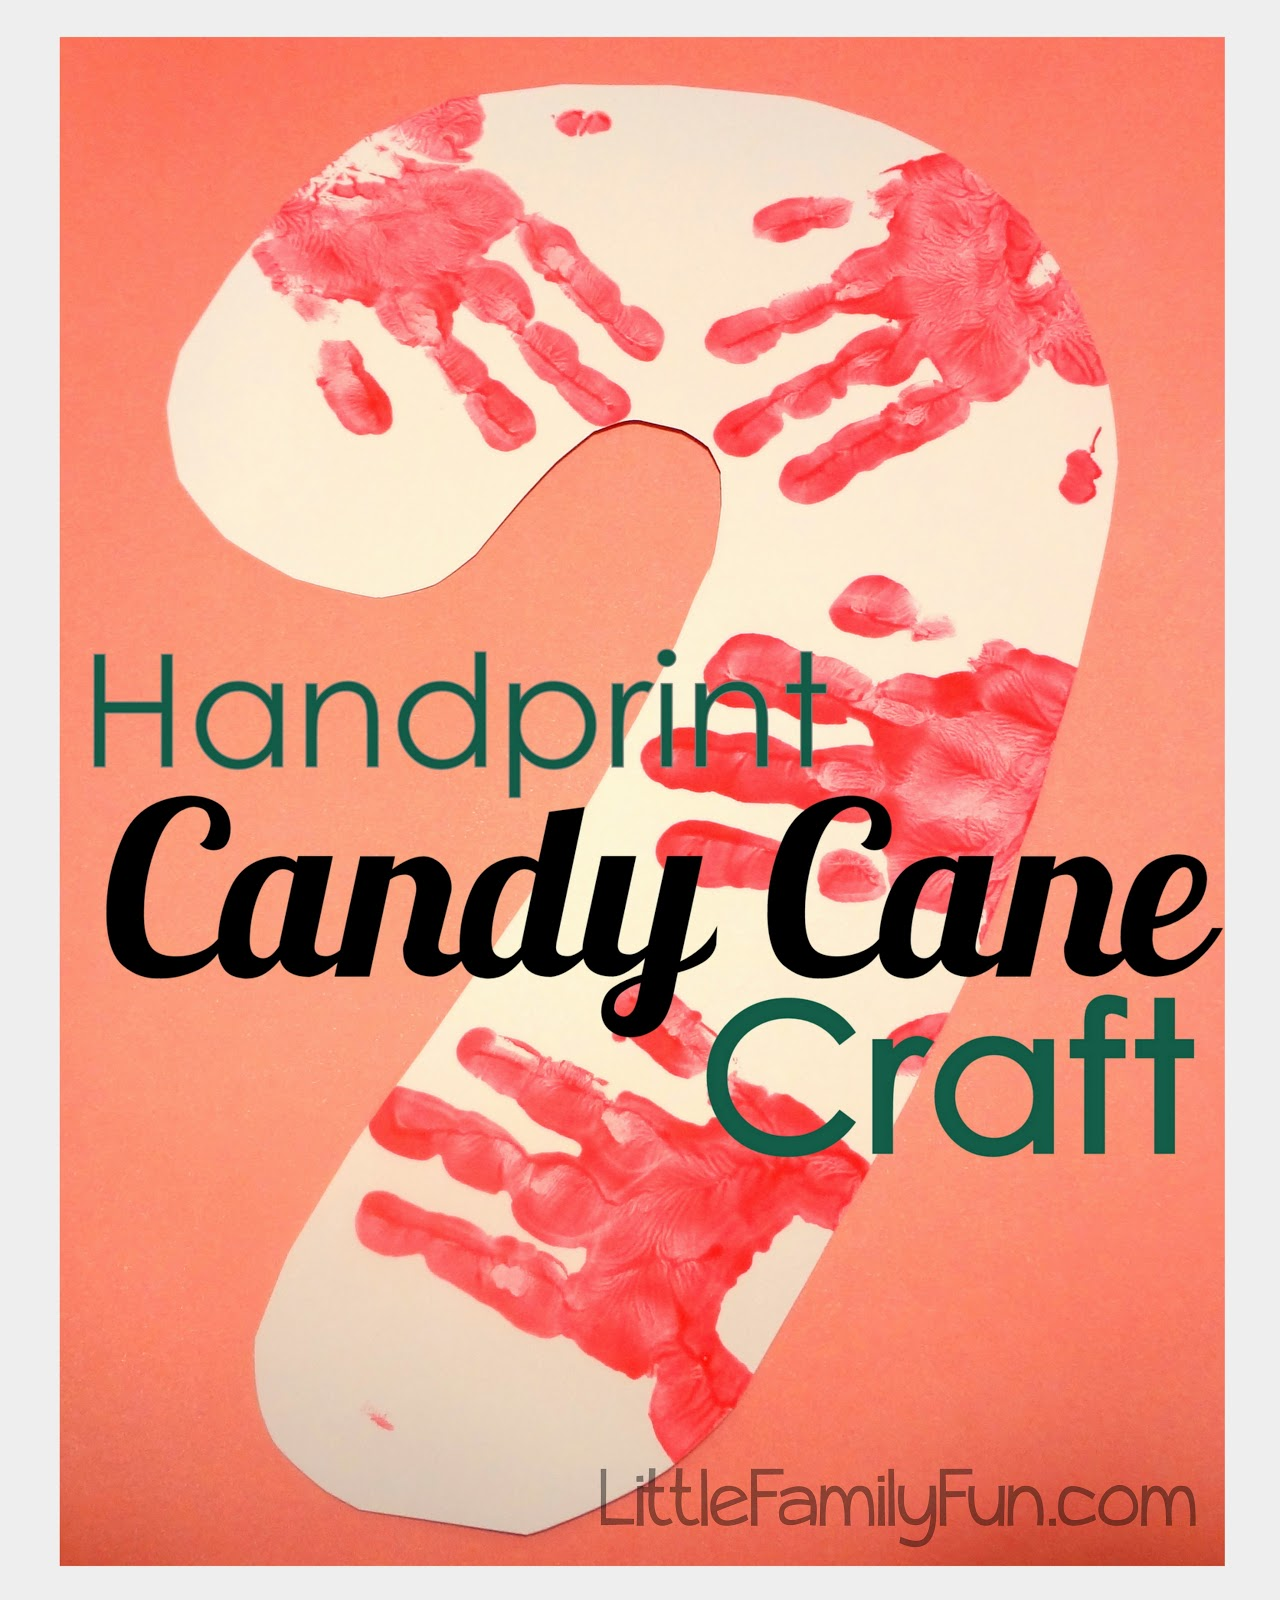 Handprint candy cane craft for Holiday project